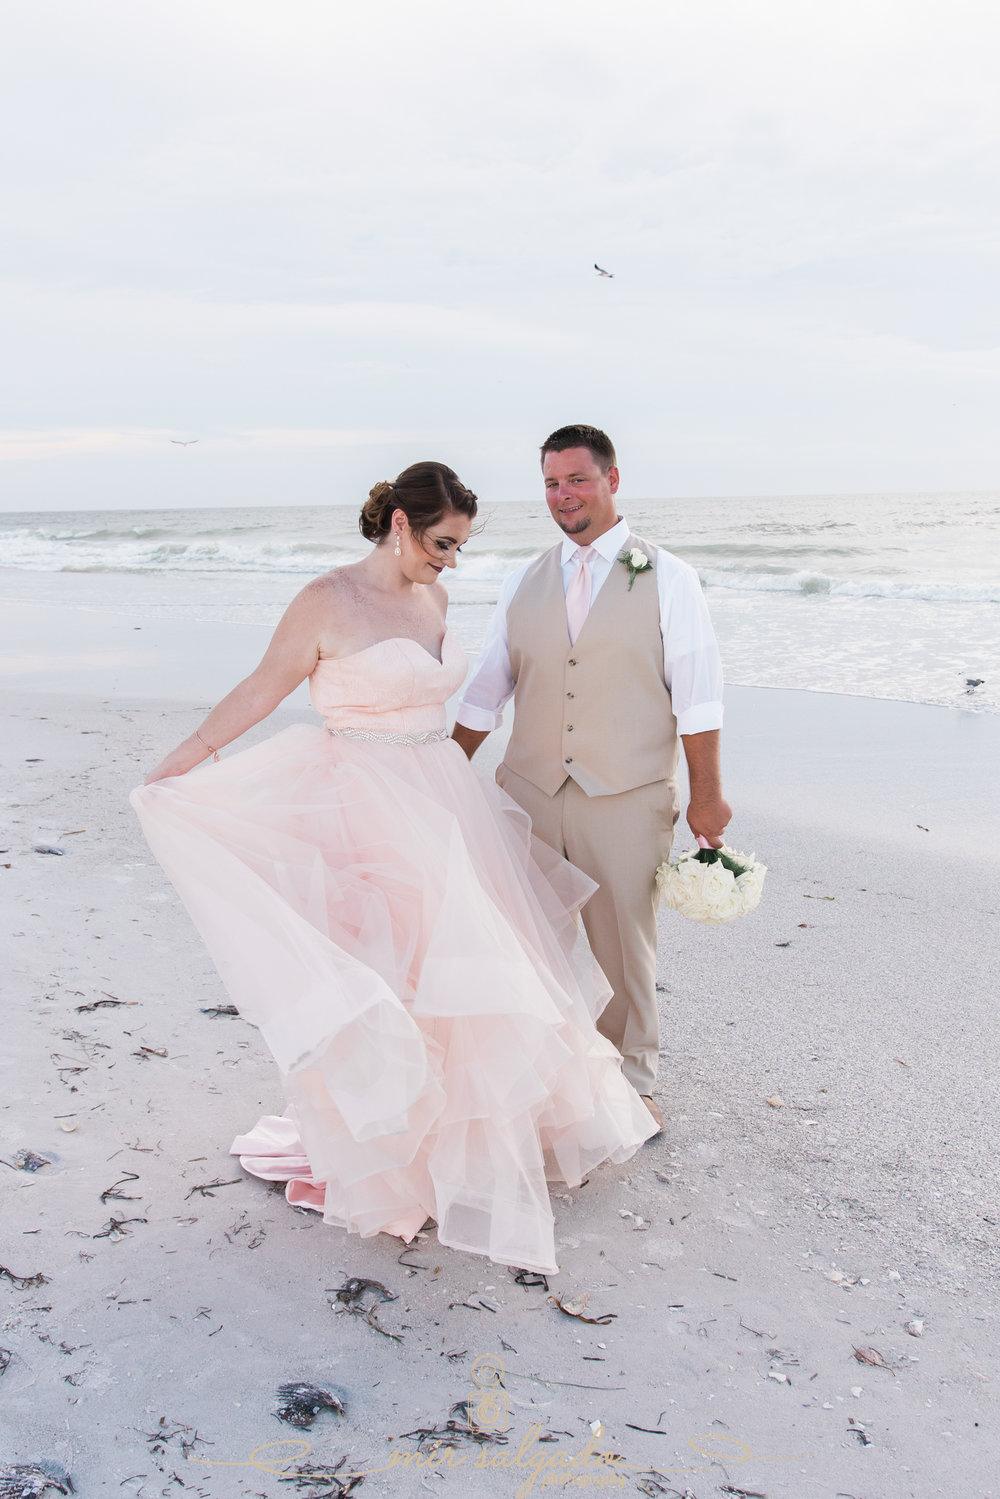 Florida-destination-wedding-photographer, Florida-beach-wedding-photo, pink-wedding-dress